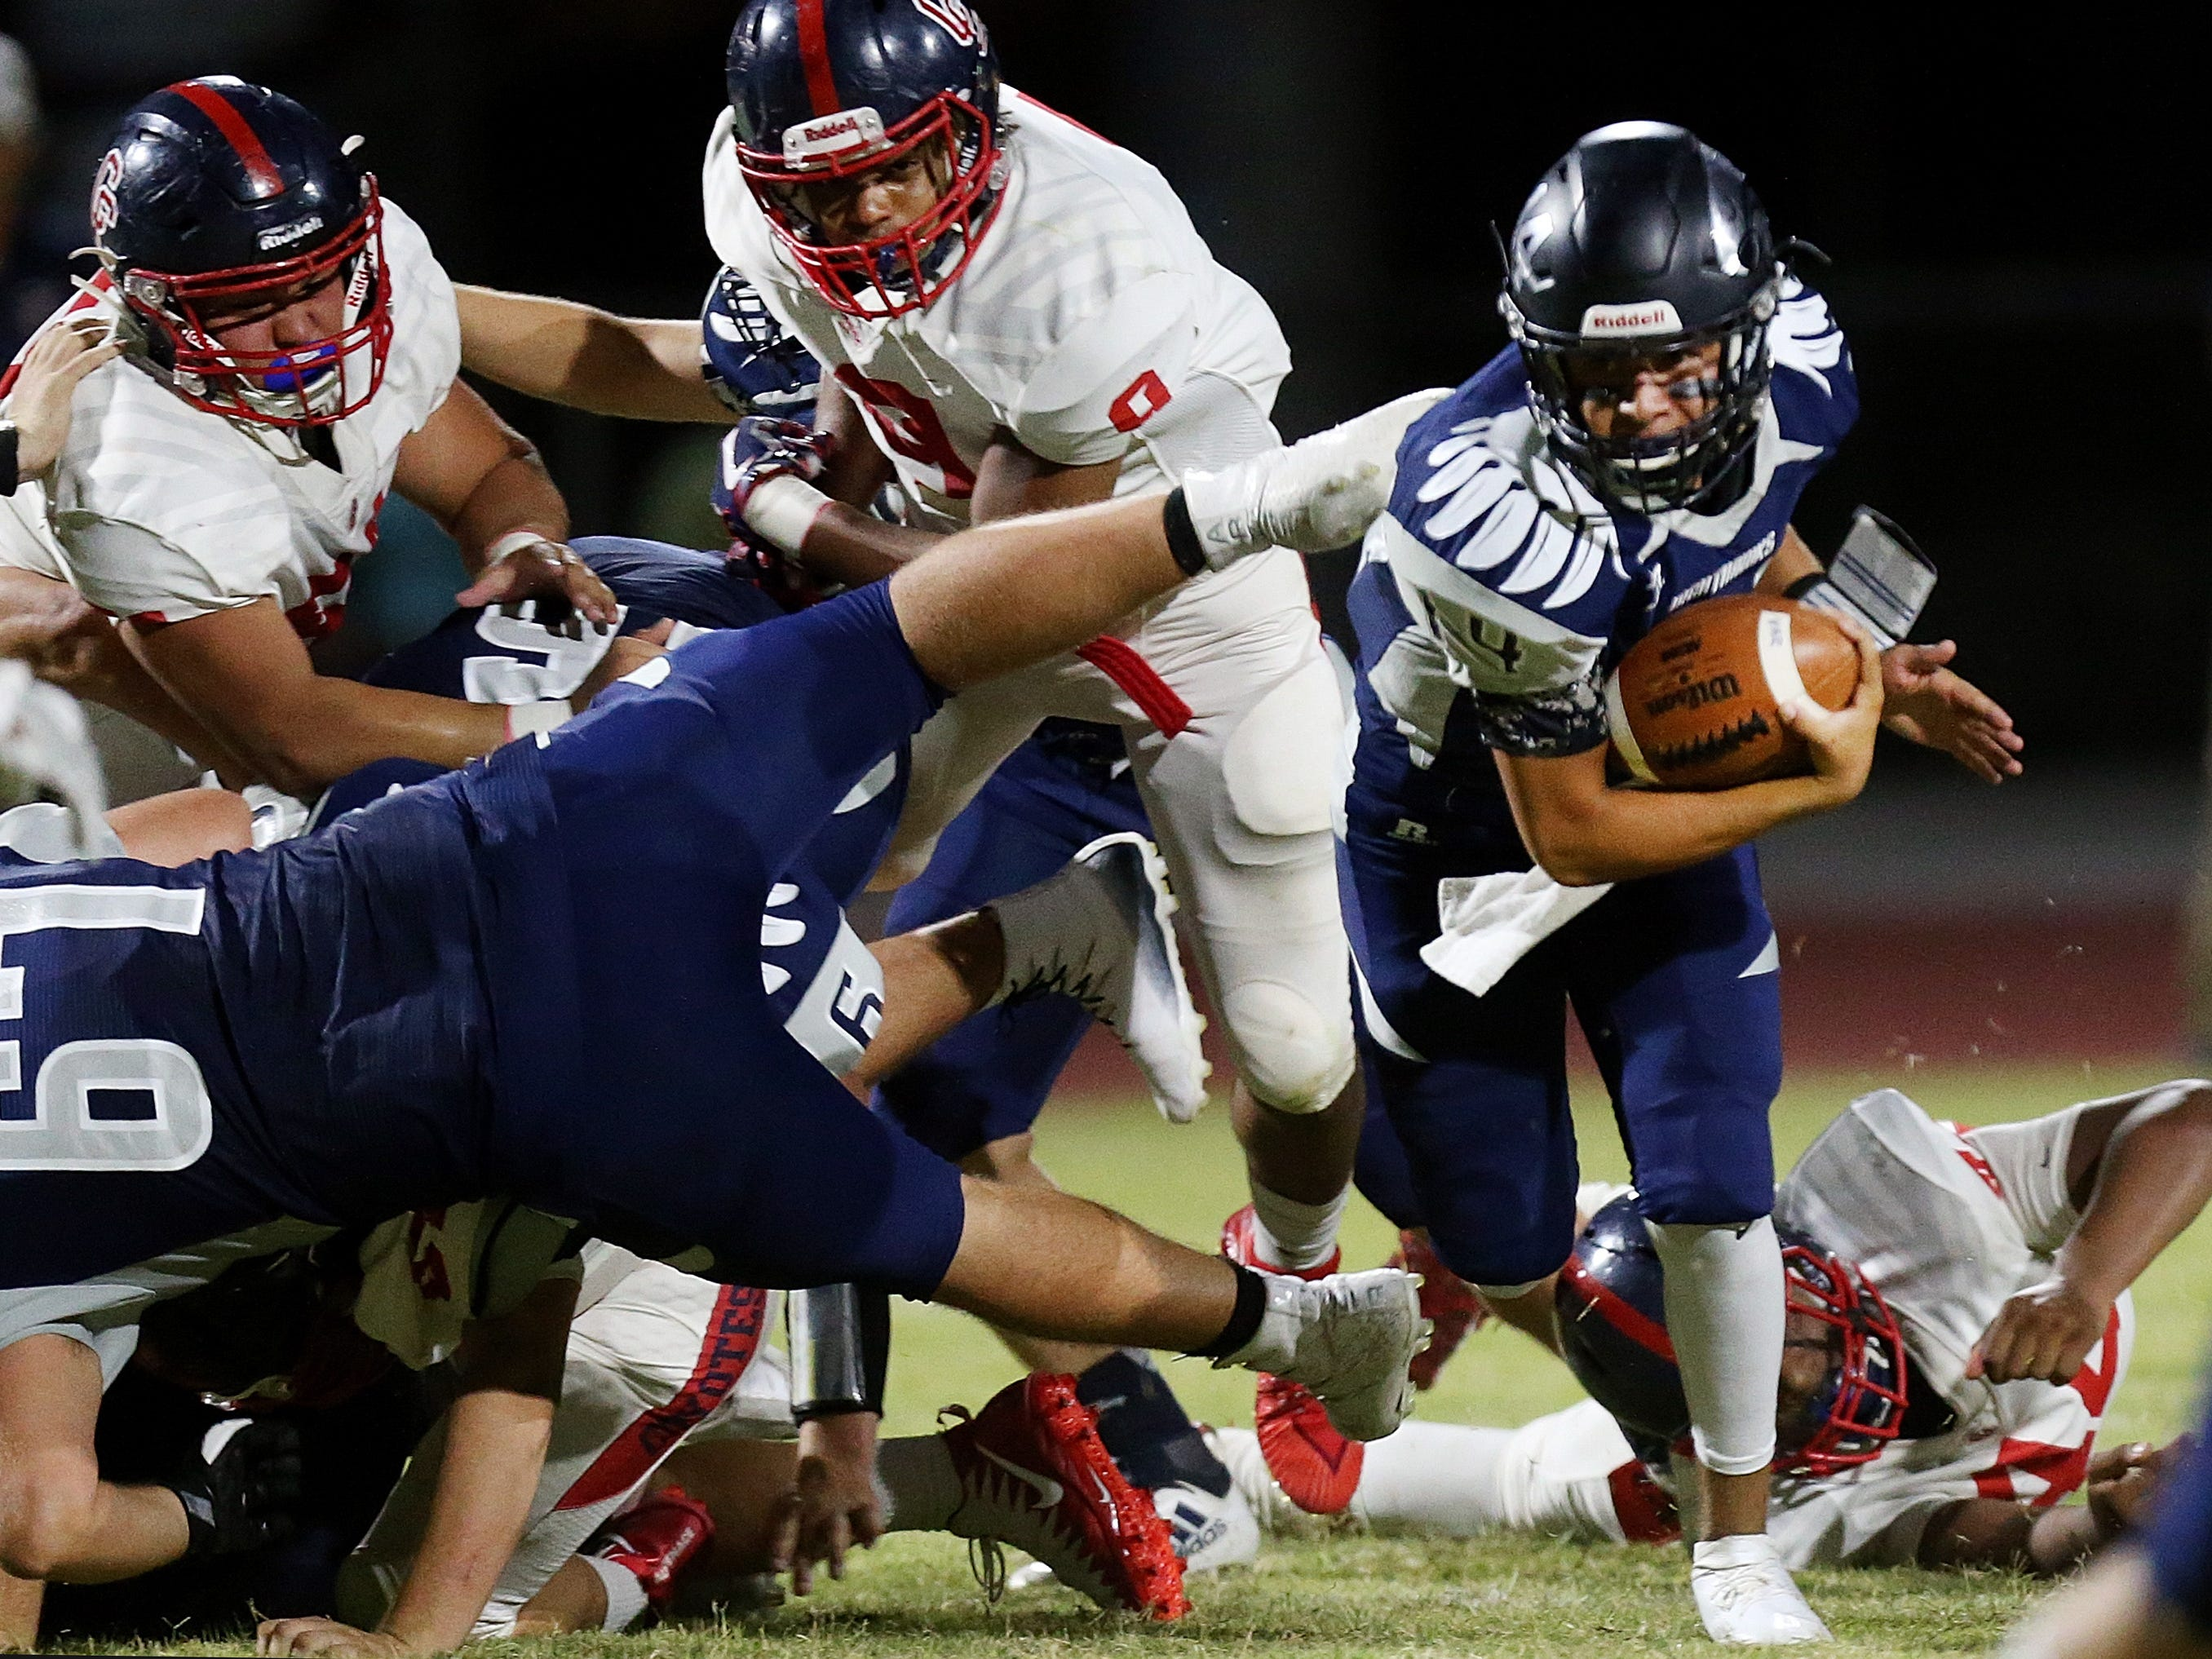 Ironwood Ridge quarterback Fabian Figueroa (14) breaks through the melee for a keeper during the second quarter of the Ironwood Ridge vs. Peoria Centennial high school football game at Ironwood Ridge High School, 2475 W. Naranja Drive, on Sept. 14, 2018, in Oro Valley, Ariz. Centennial won 55-7.